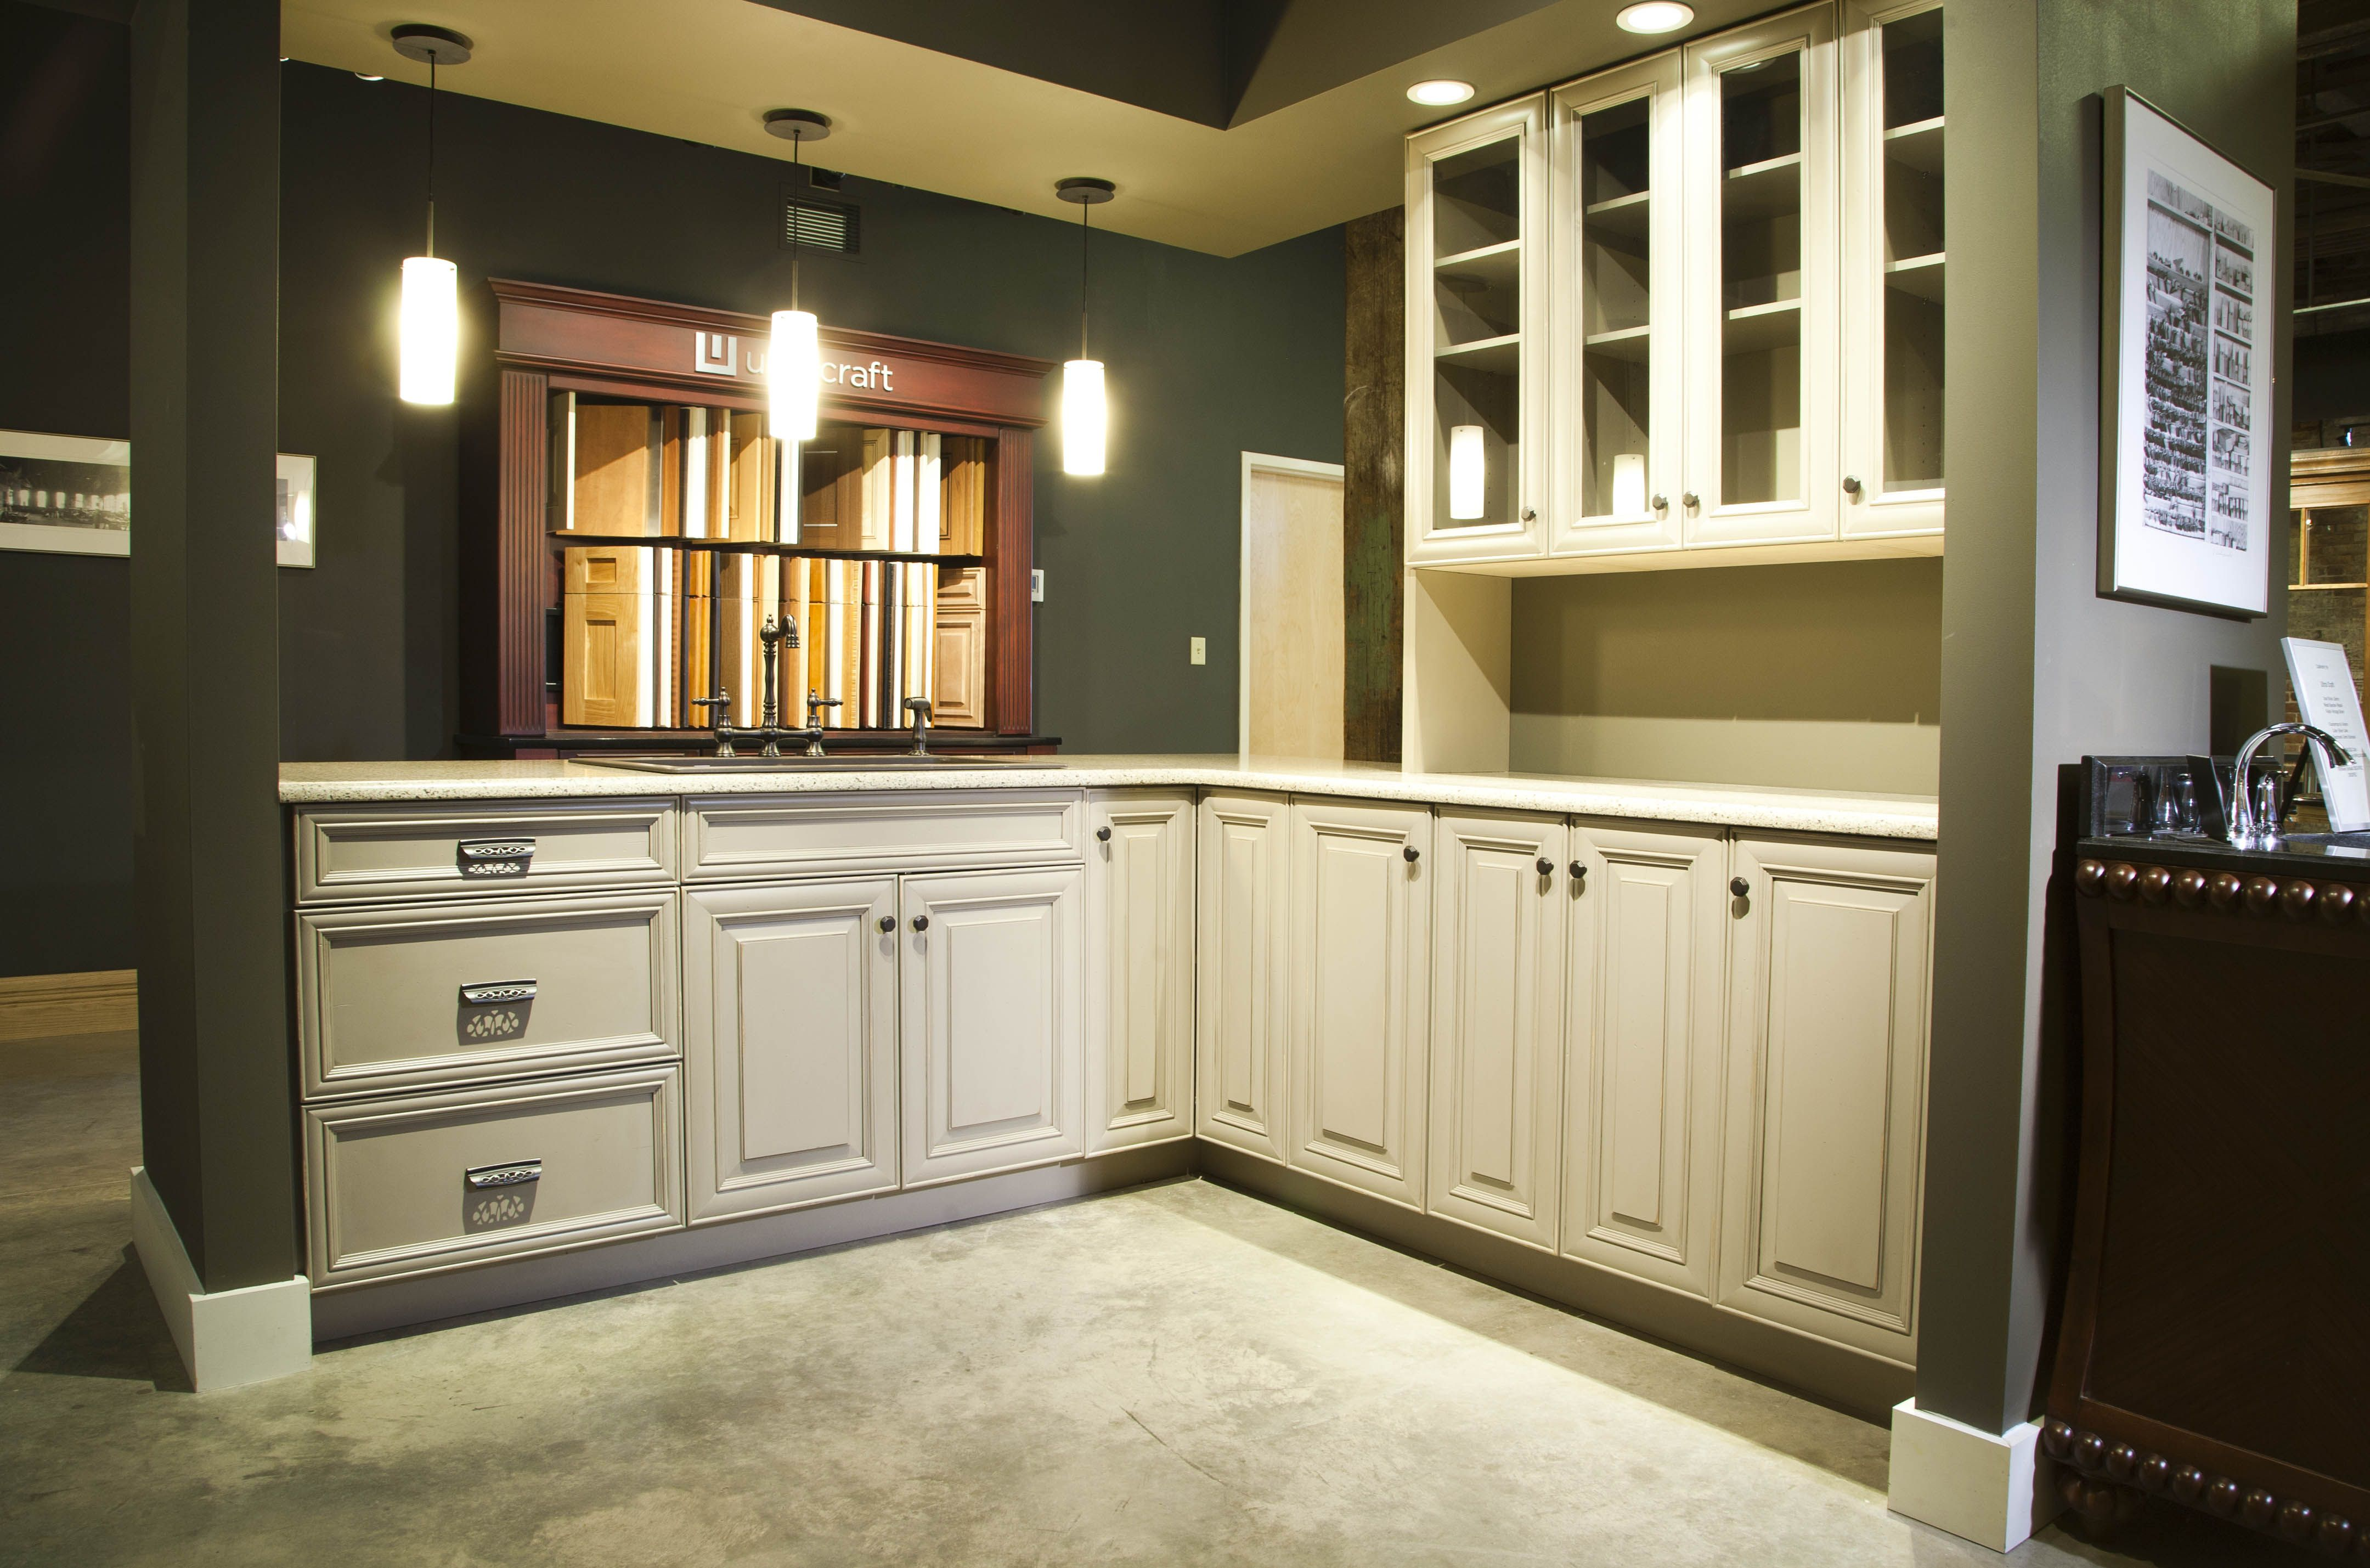 Kitchen Showroom Design Requarth Co Ultra Craft